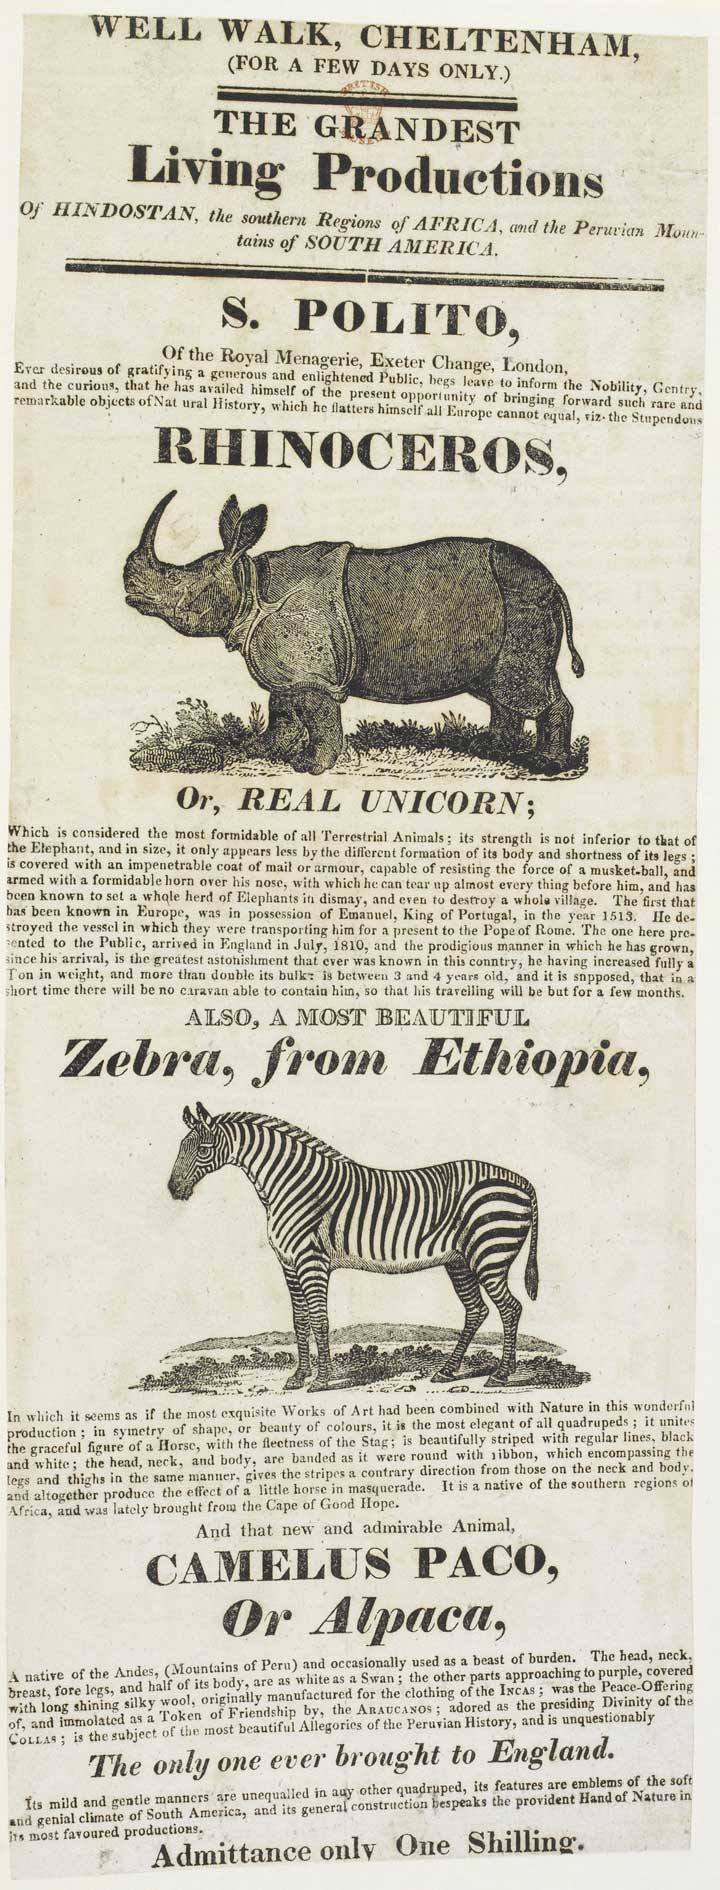 Poster advertising exhibition of a zebra and rhino, date unknown